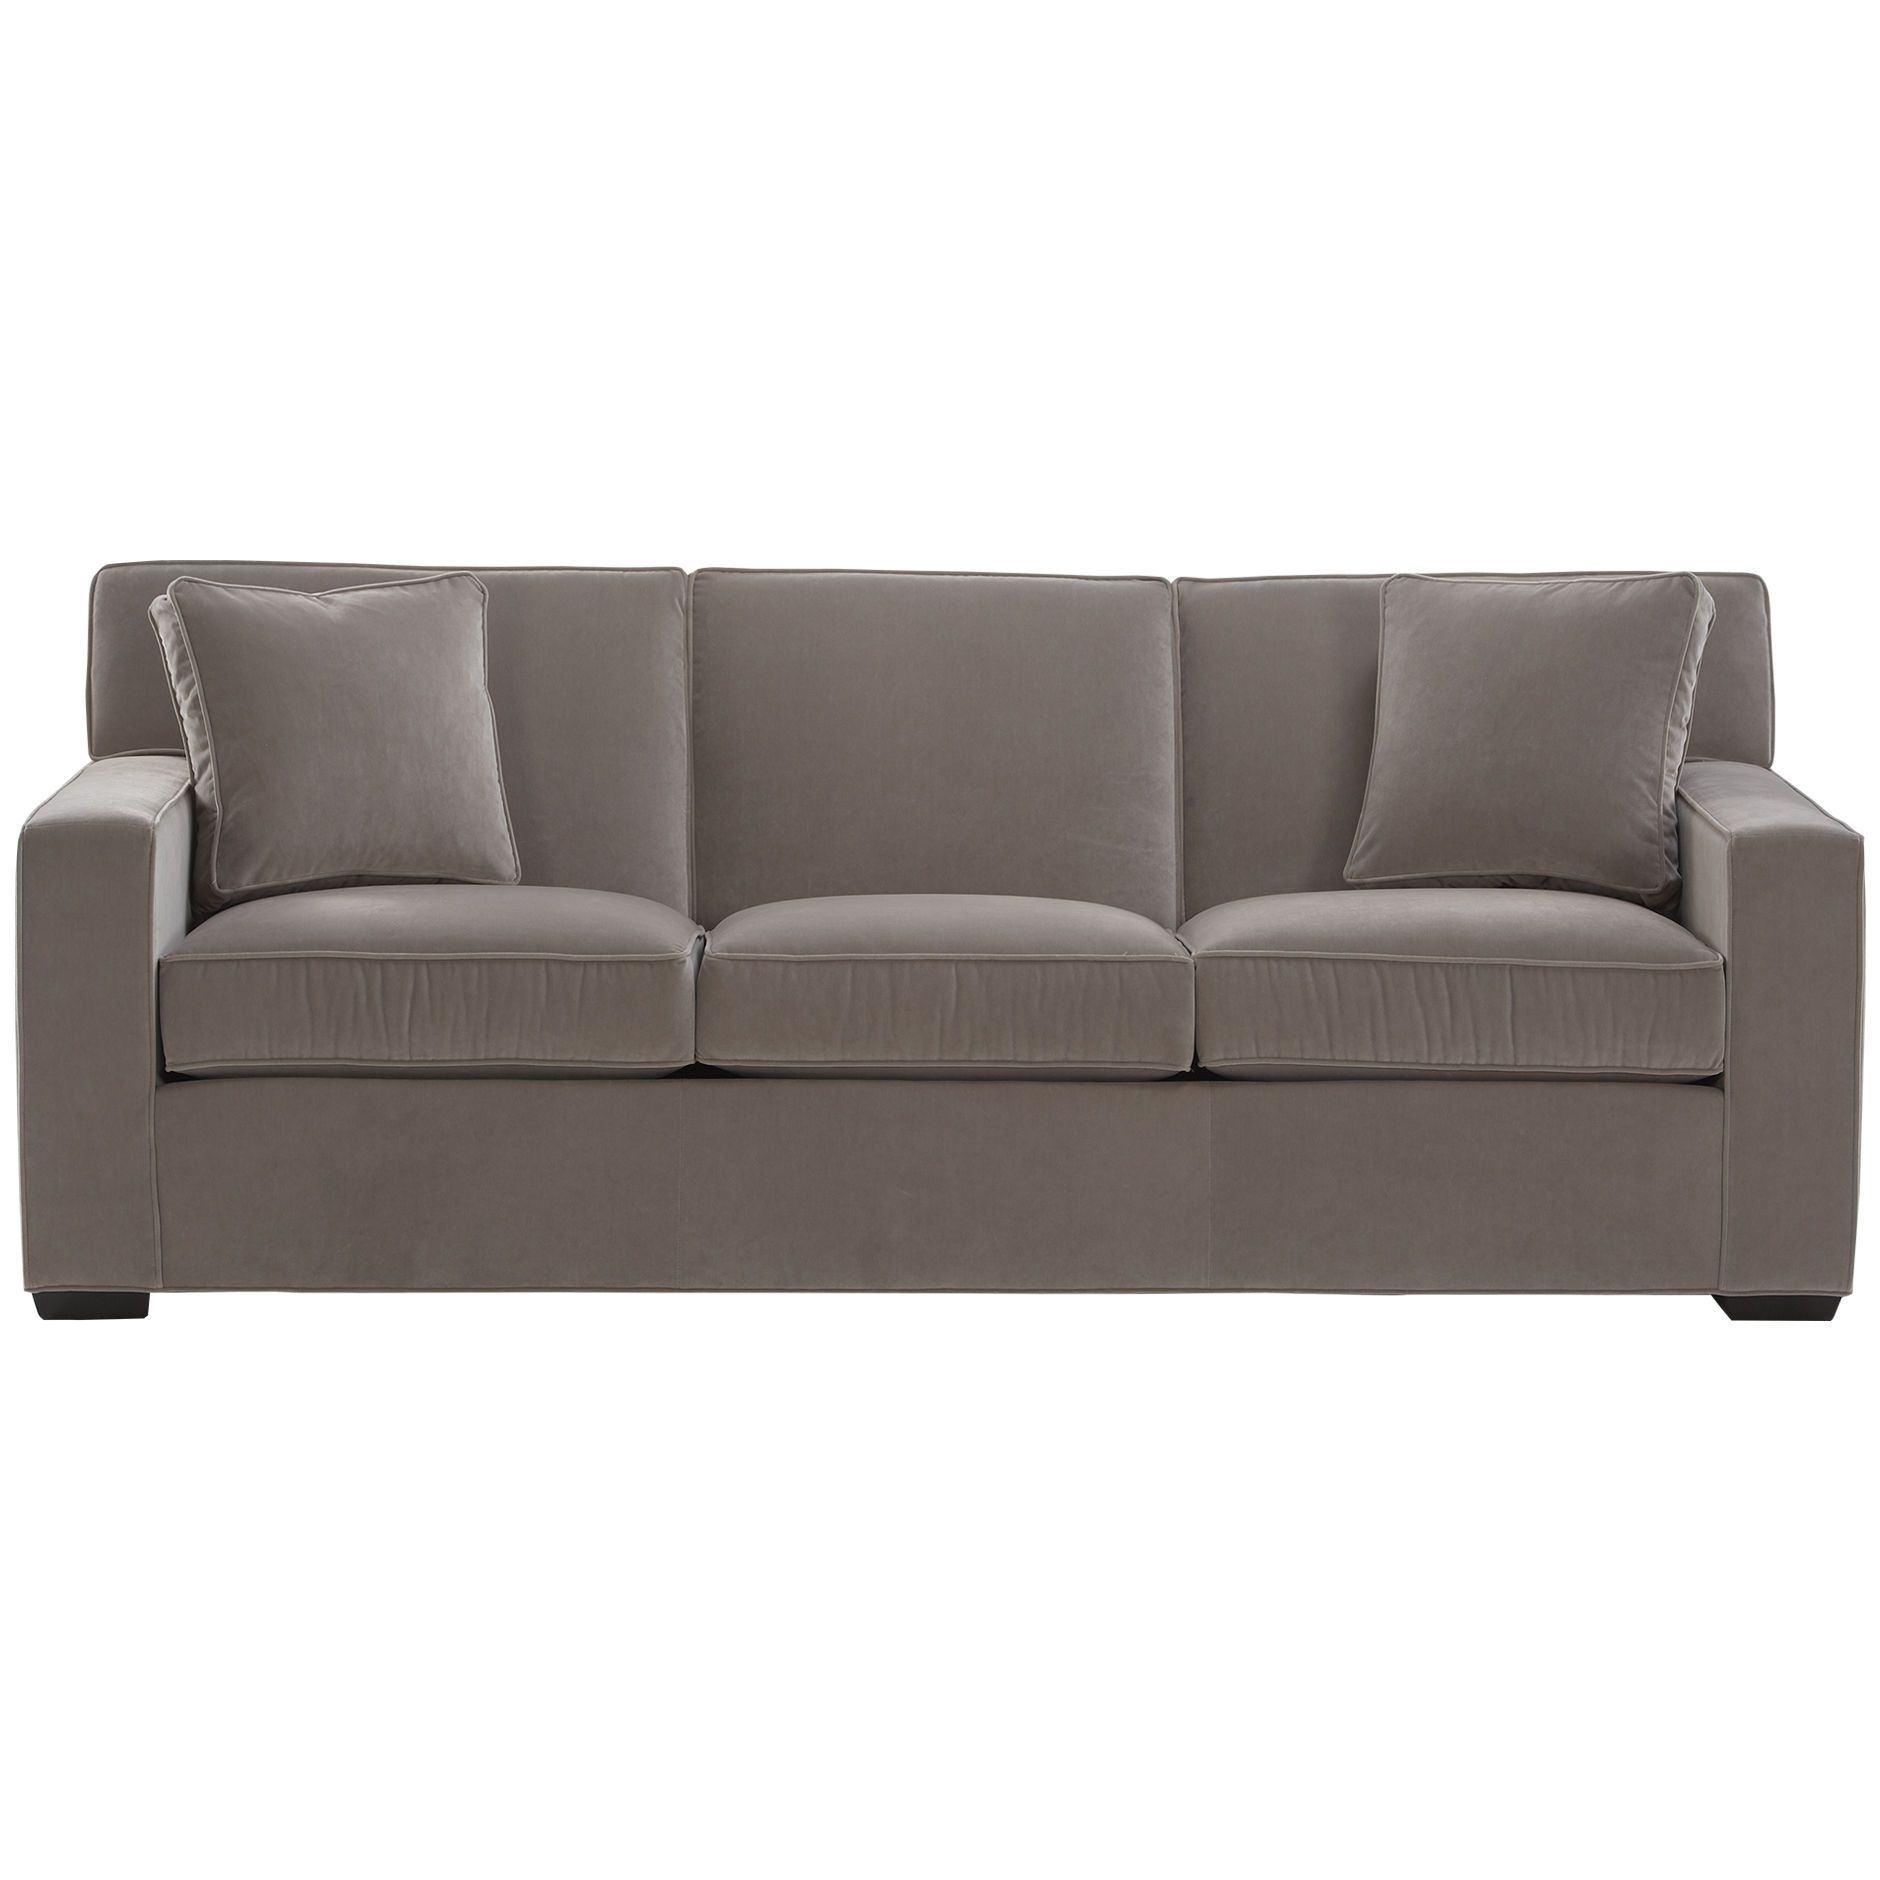 I Would Love The Kendall Sofa From Ethan Allen But I Am Going To